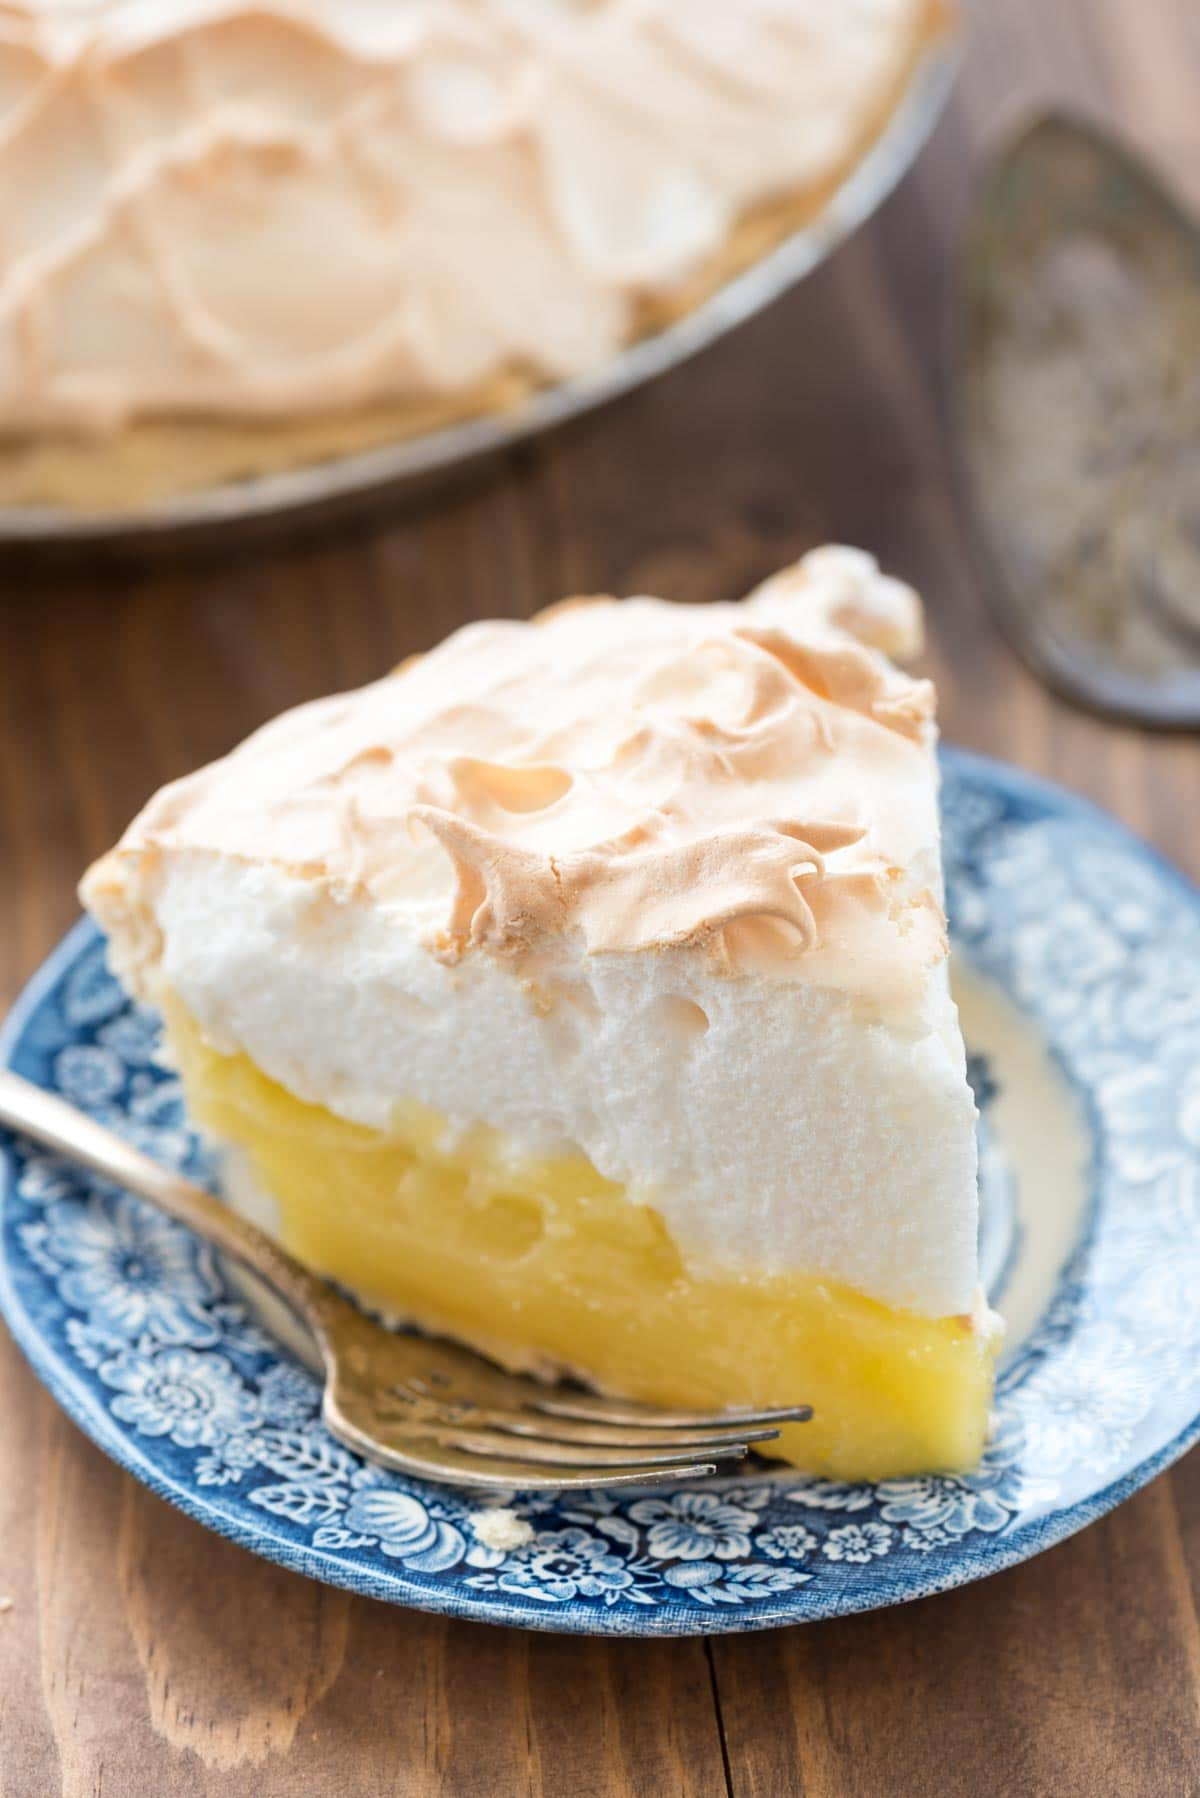 Aunt Tootsie's Lemon Meringue Pie recipe from Crazy for Pies by Dorothy Kern